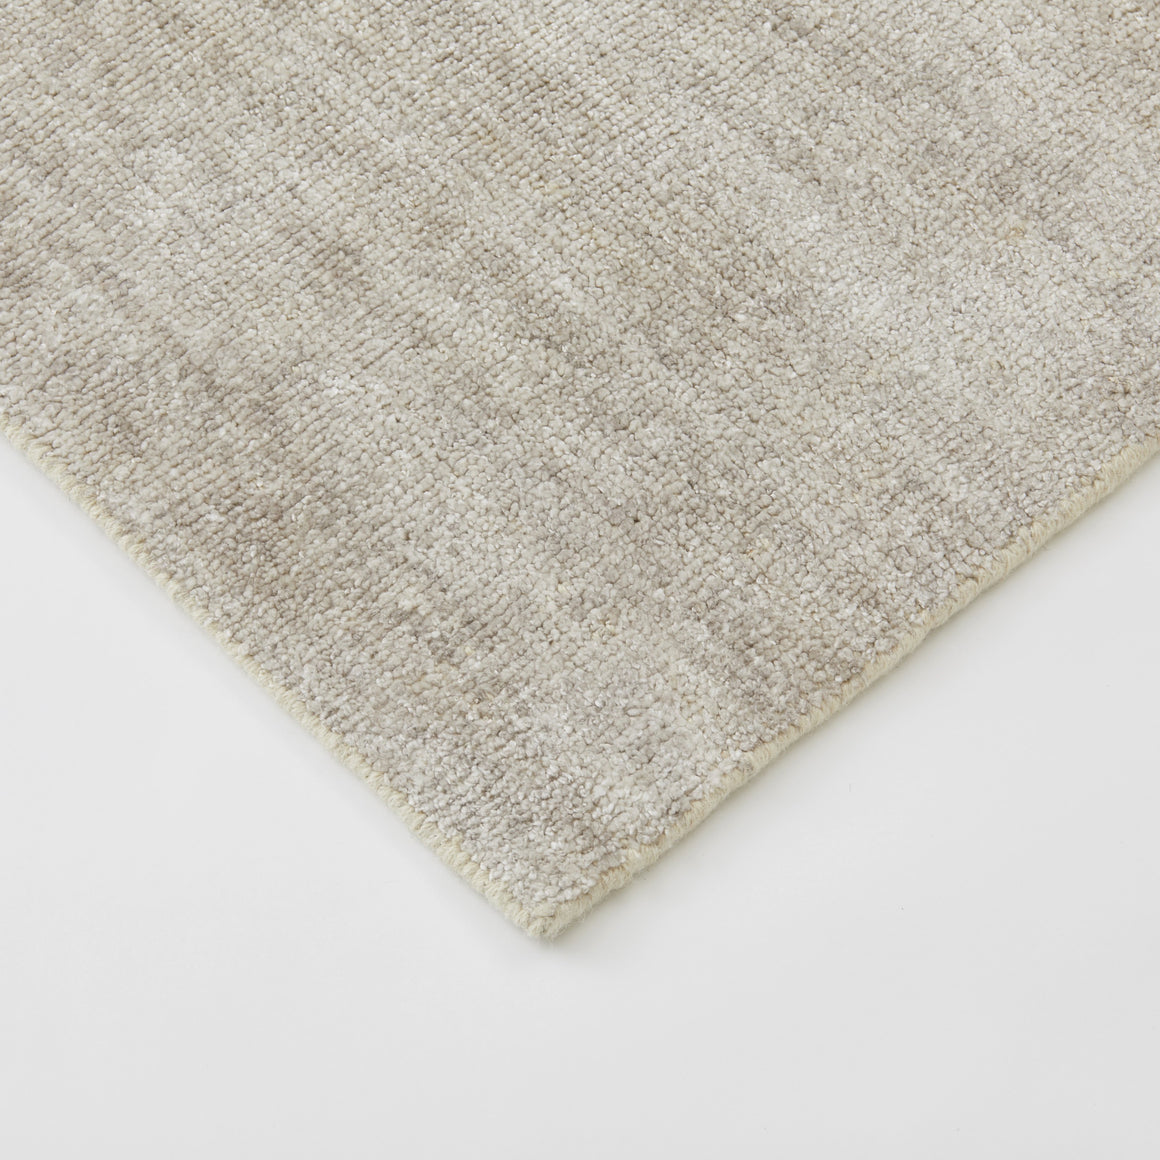 TRIBE Collection - Oyster Rug, Bamboo Silk 2 x 3m / سجادة